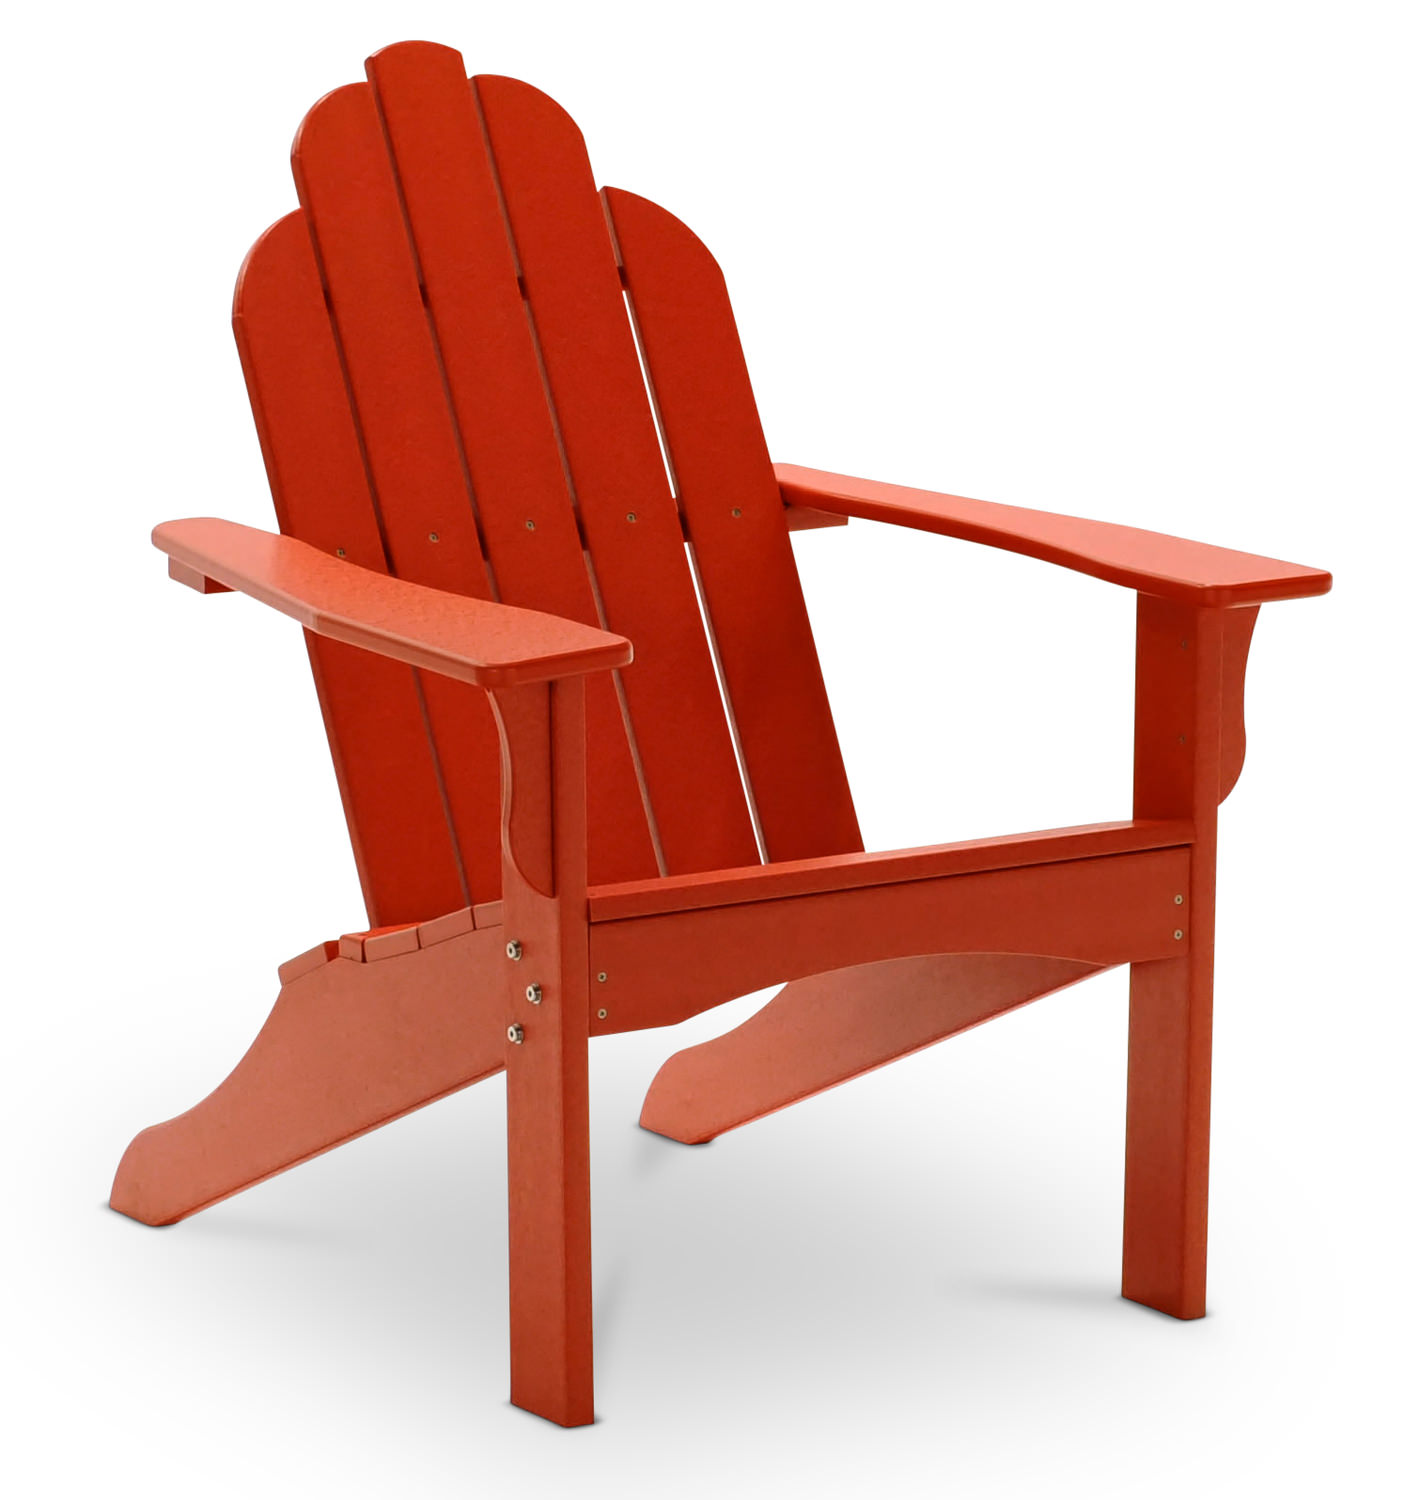 Yarmouth adirondack chair hom furniture for High quality adirondack chairs